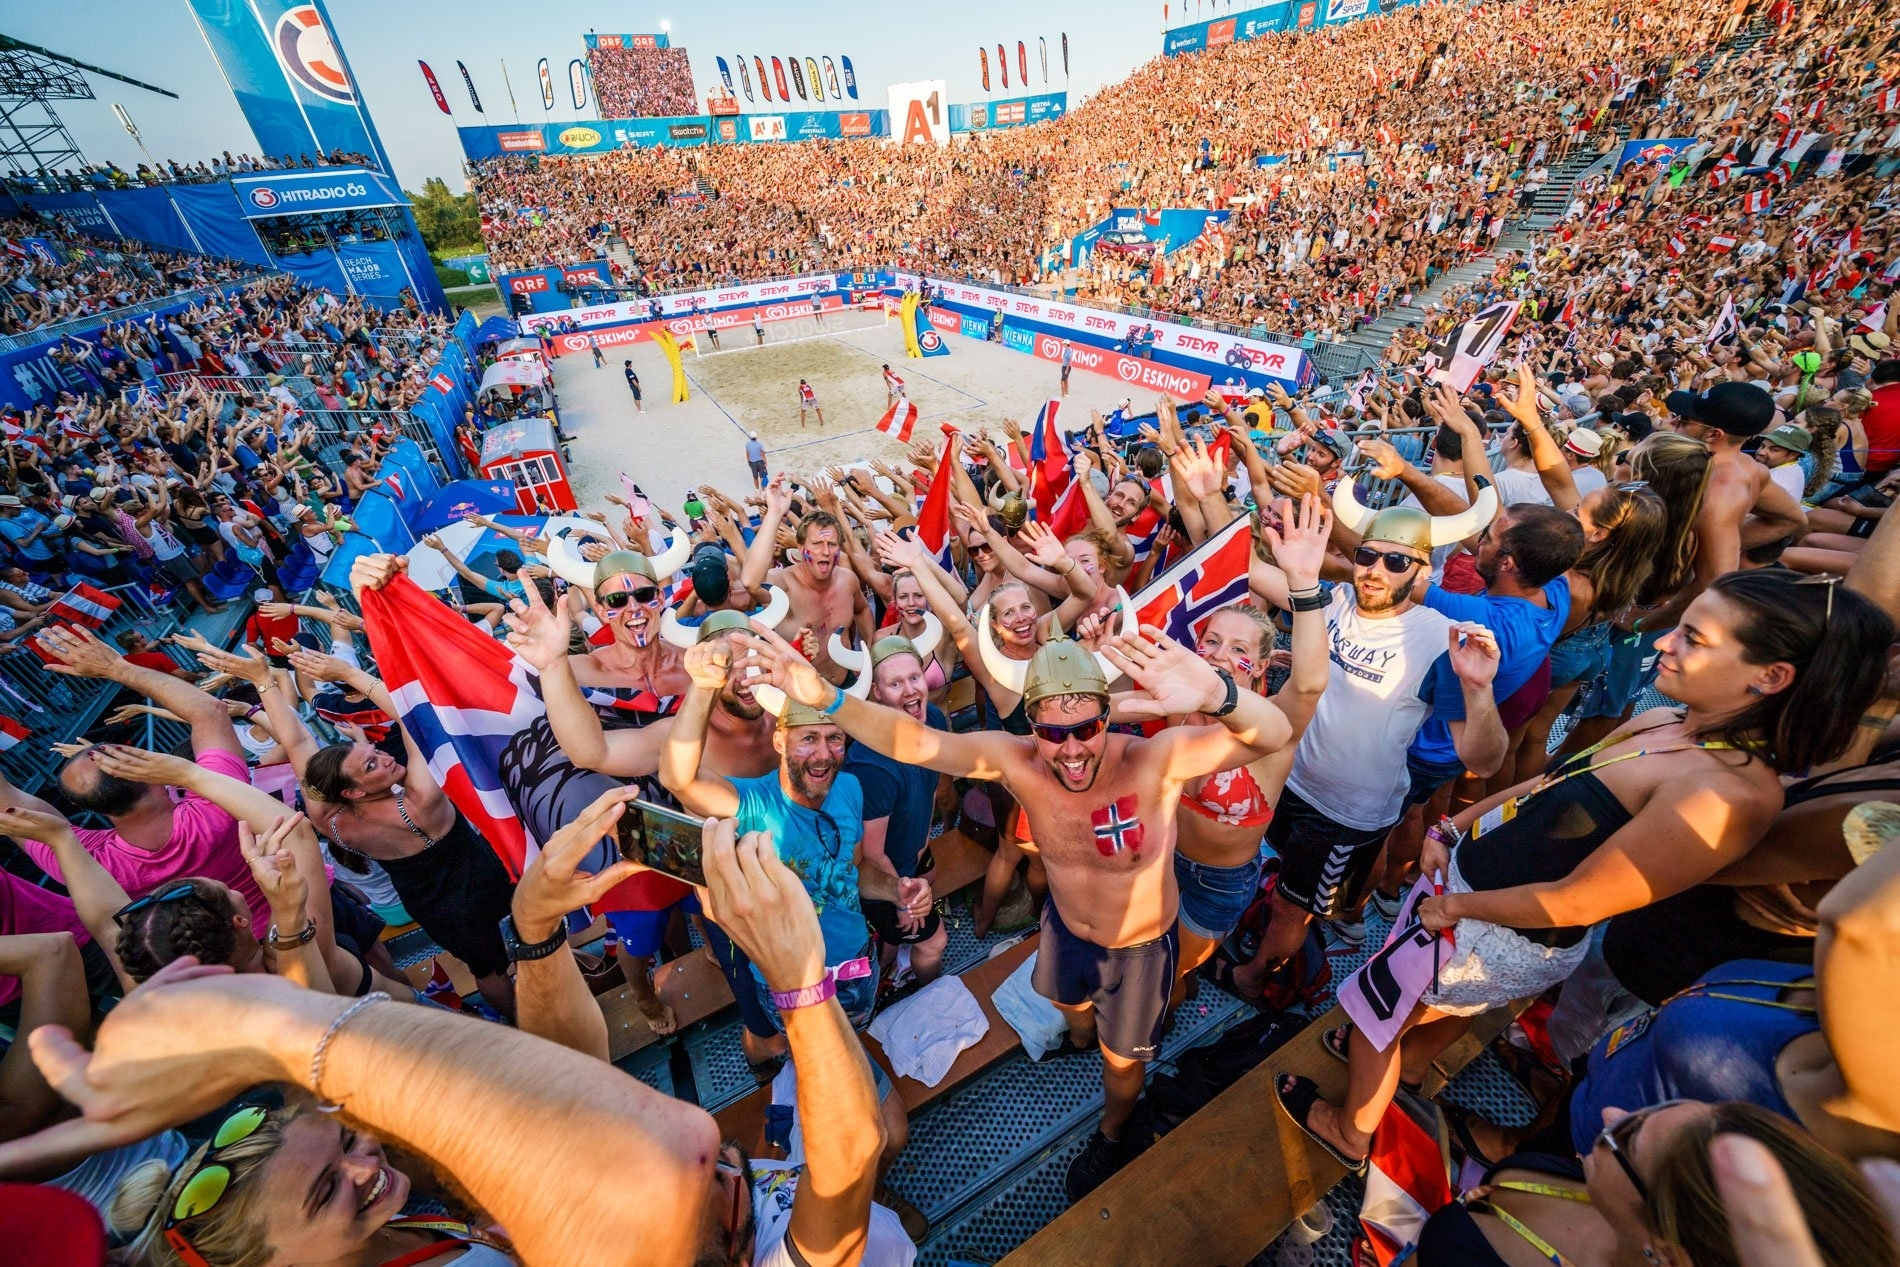 The Red Bull Beach Arena was packed to witness ultimately the Austrians' last game of the tournament